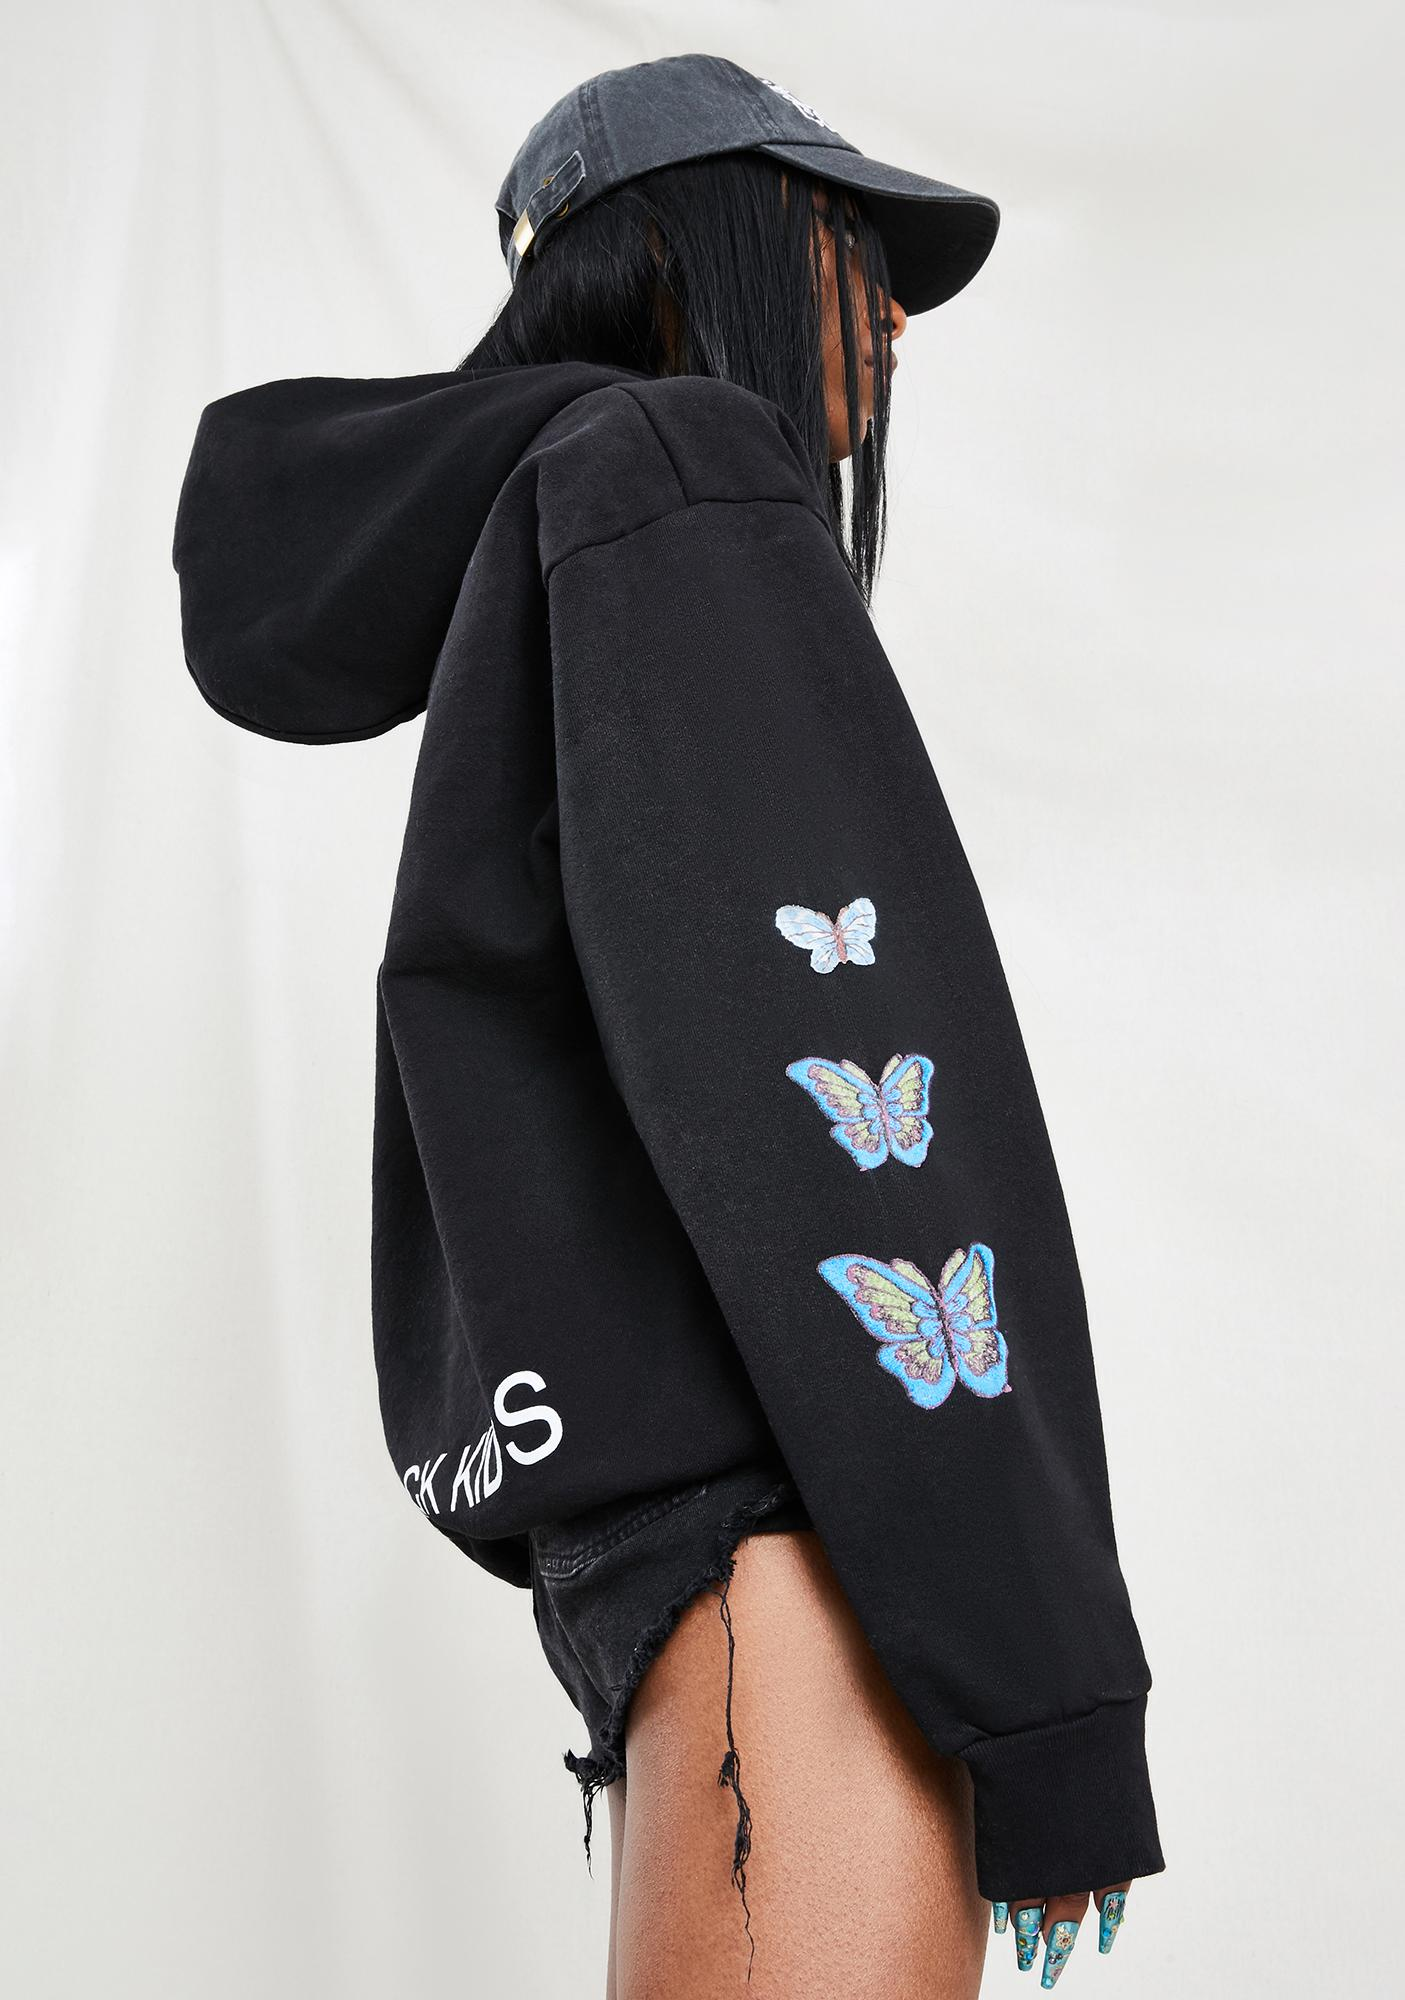 The Rad Black Kids Butterfly Graphic Hoodie